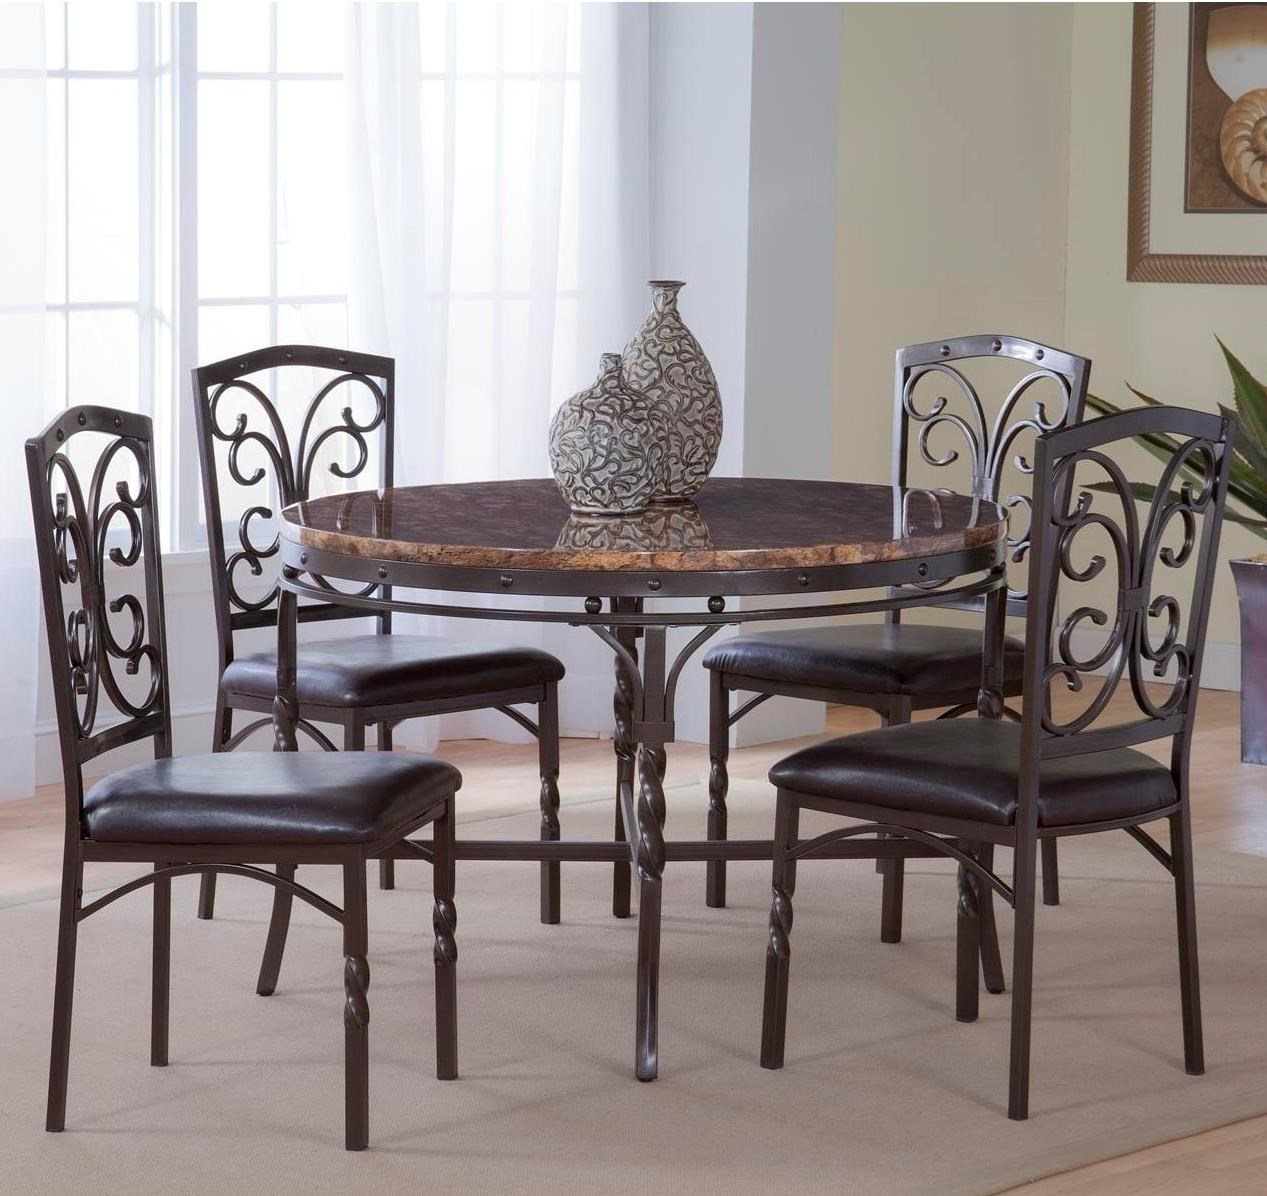 Bernards Tuscan 5 Piece Metal/Faux Marble Dinette Table Set